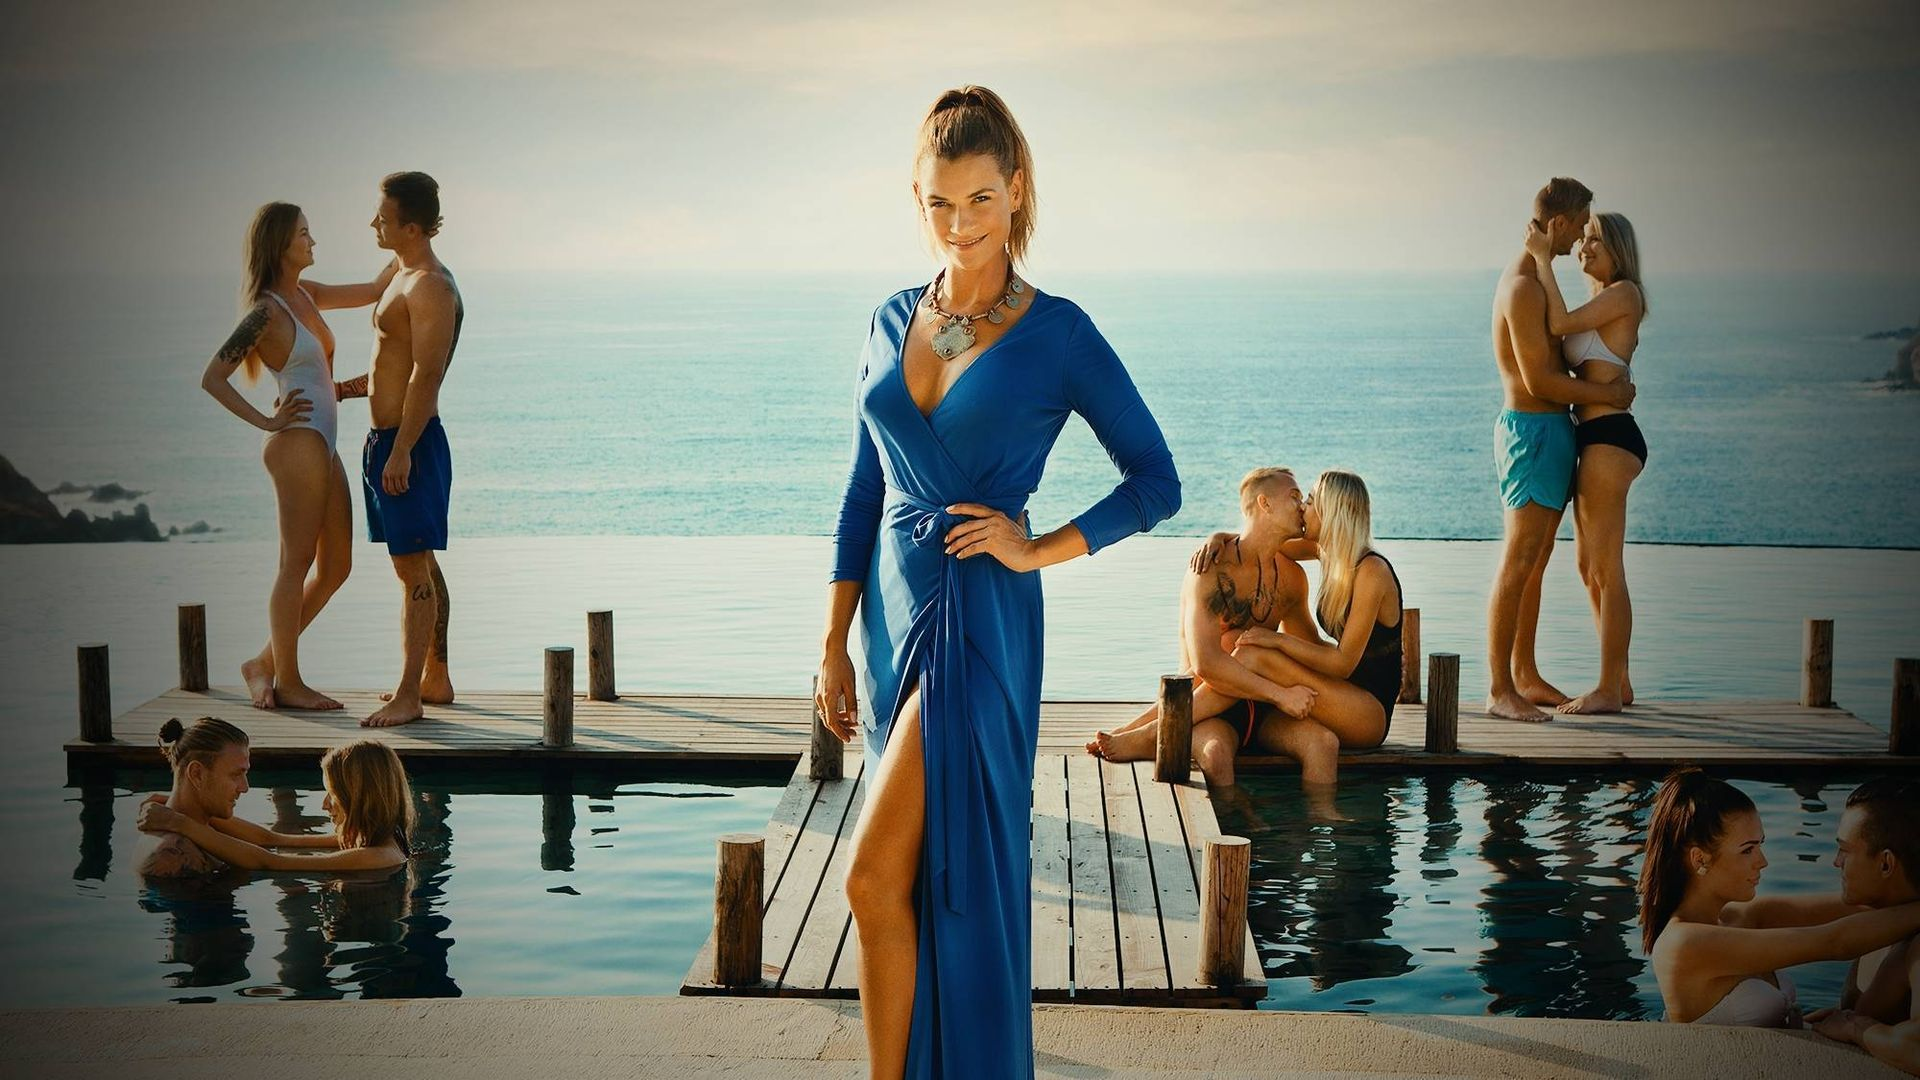 Paradise Hotel Denmark Where To Watch Every Episode Streaming